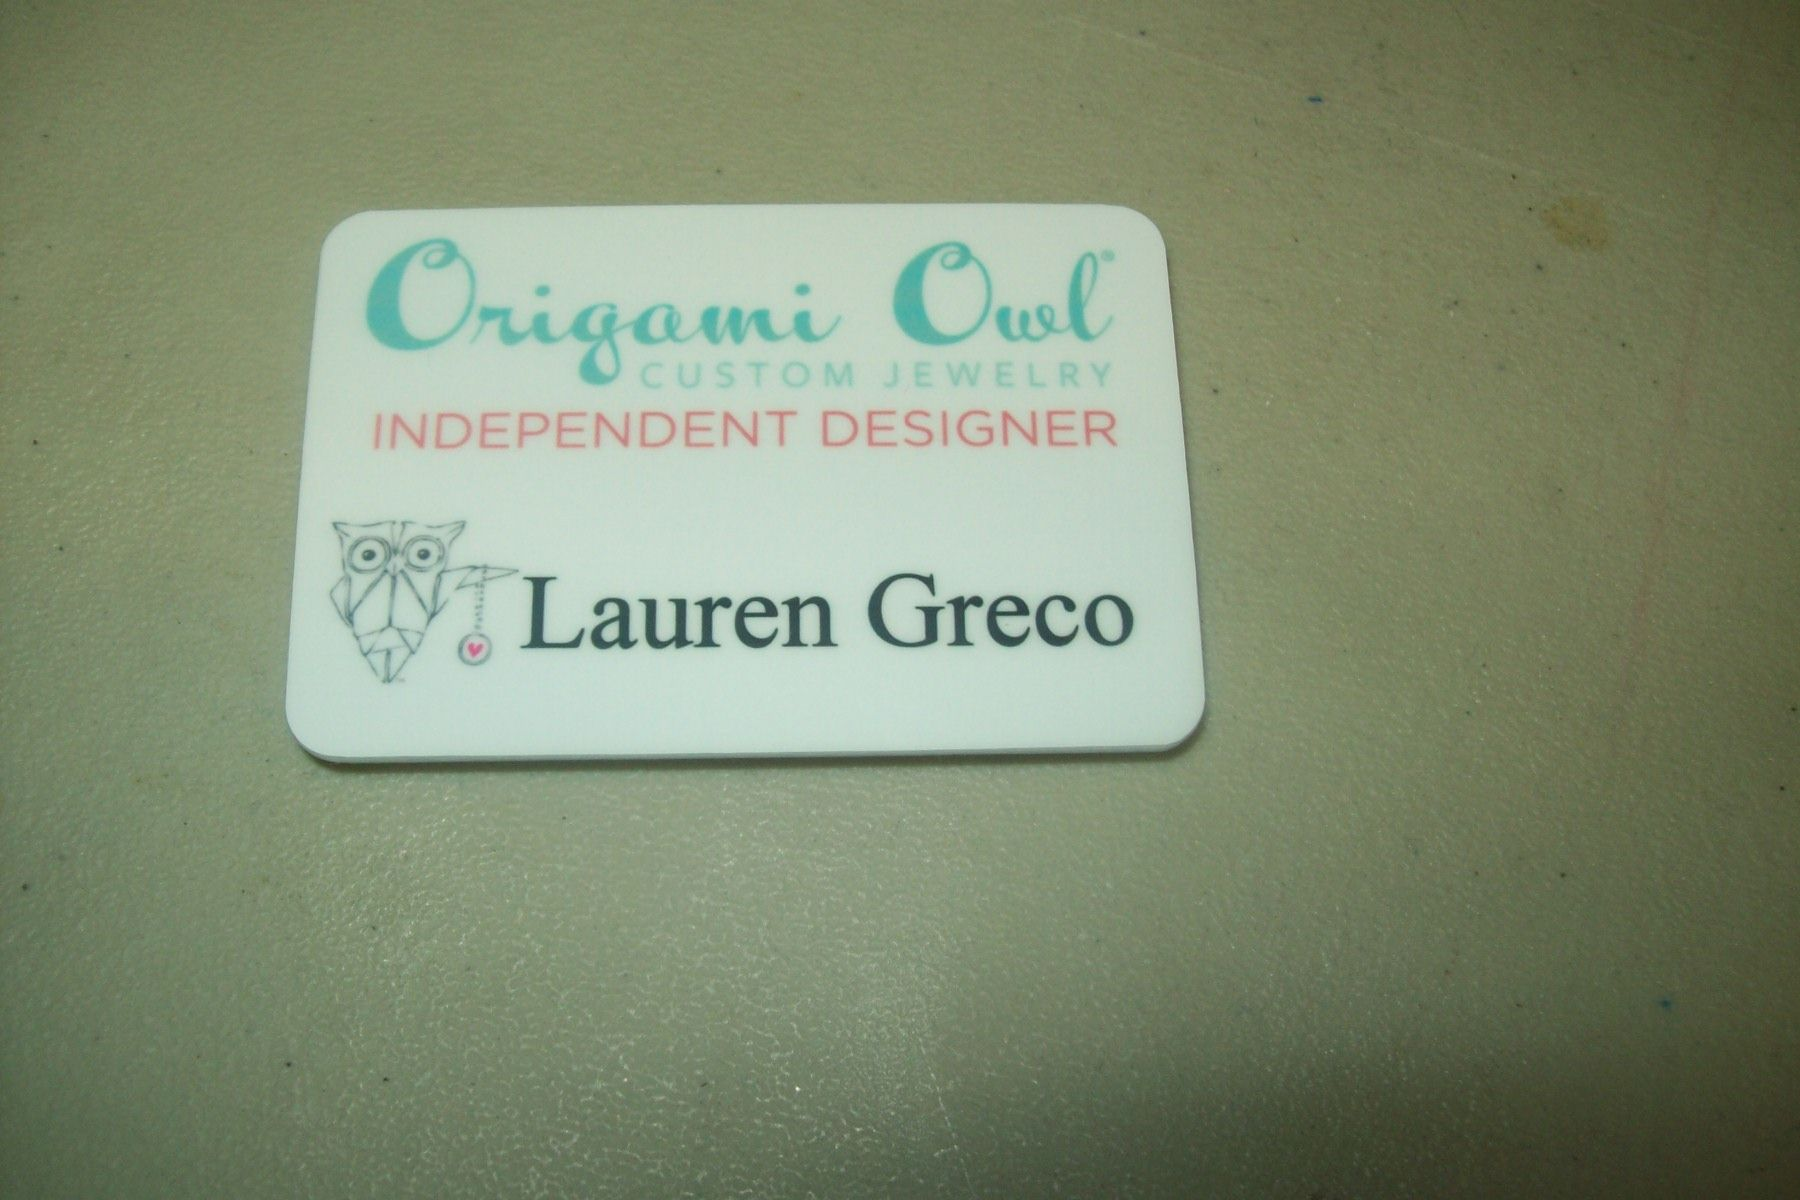 origami owl name badge, we print anything you want on your name badges.